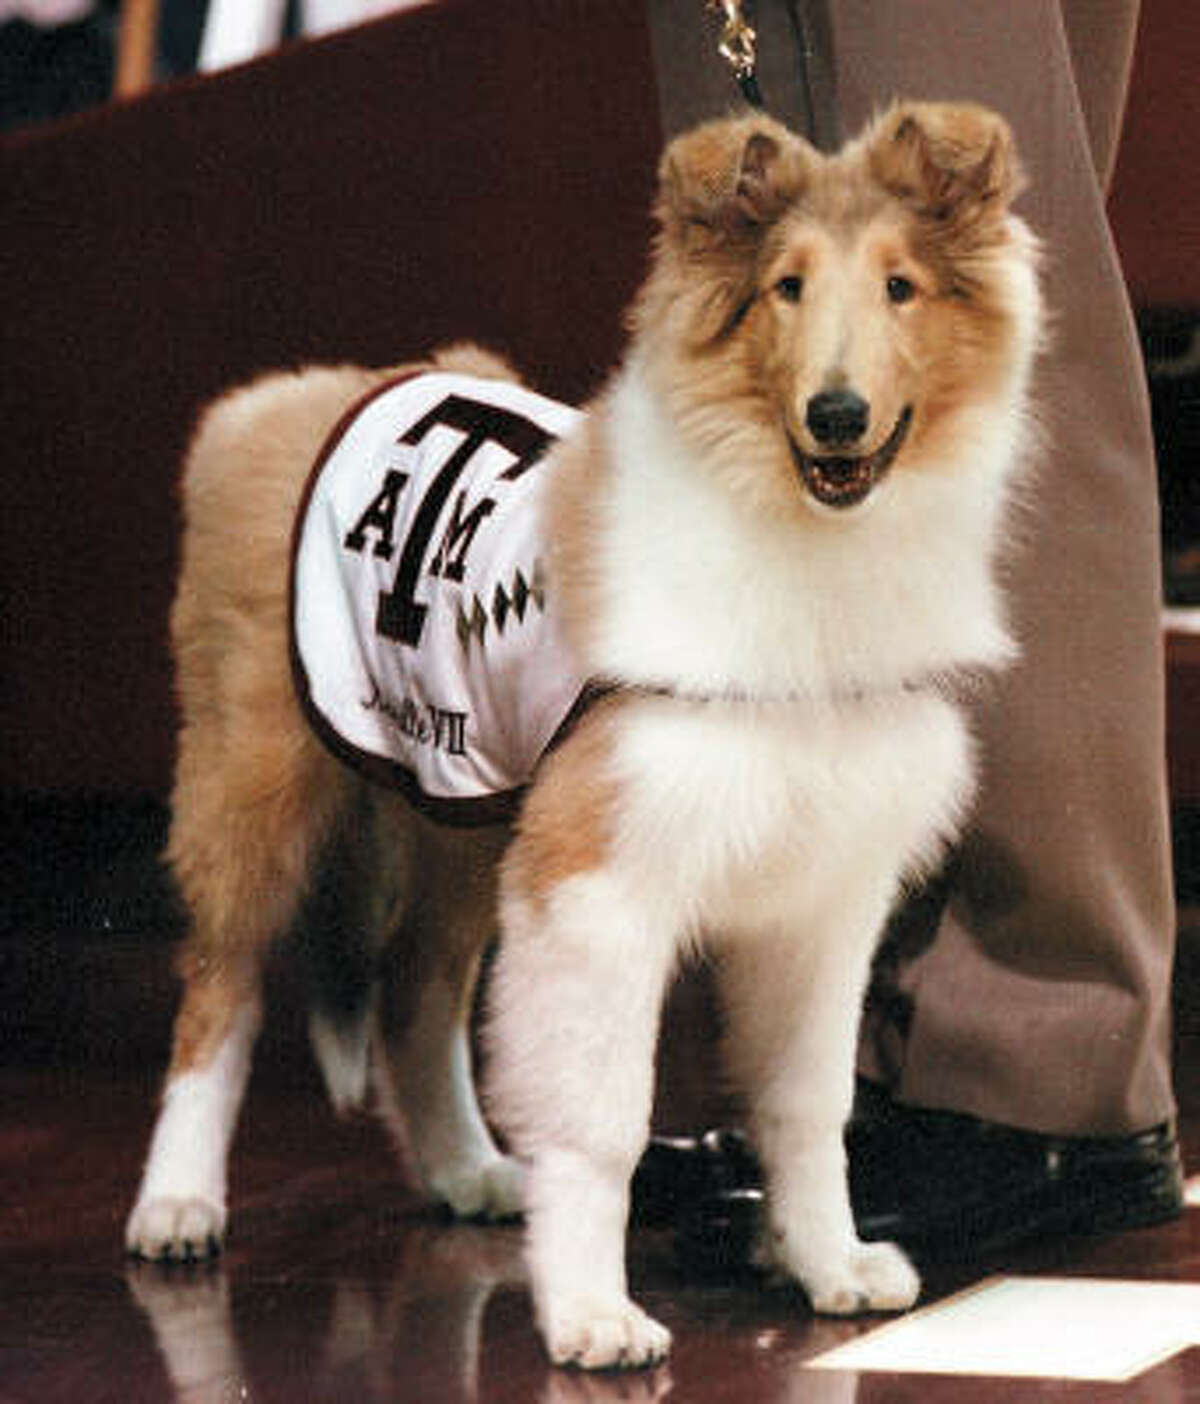 Reveille VII looks at the crowd during her debut before the start of the basketball game between Texas A&M and Missouri on Feb. 17, 2001, in College Station.